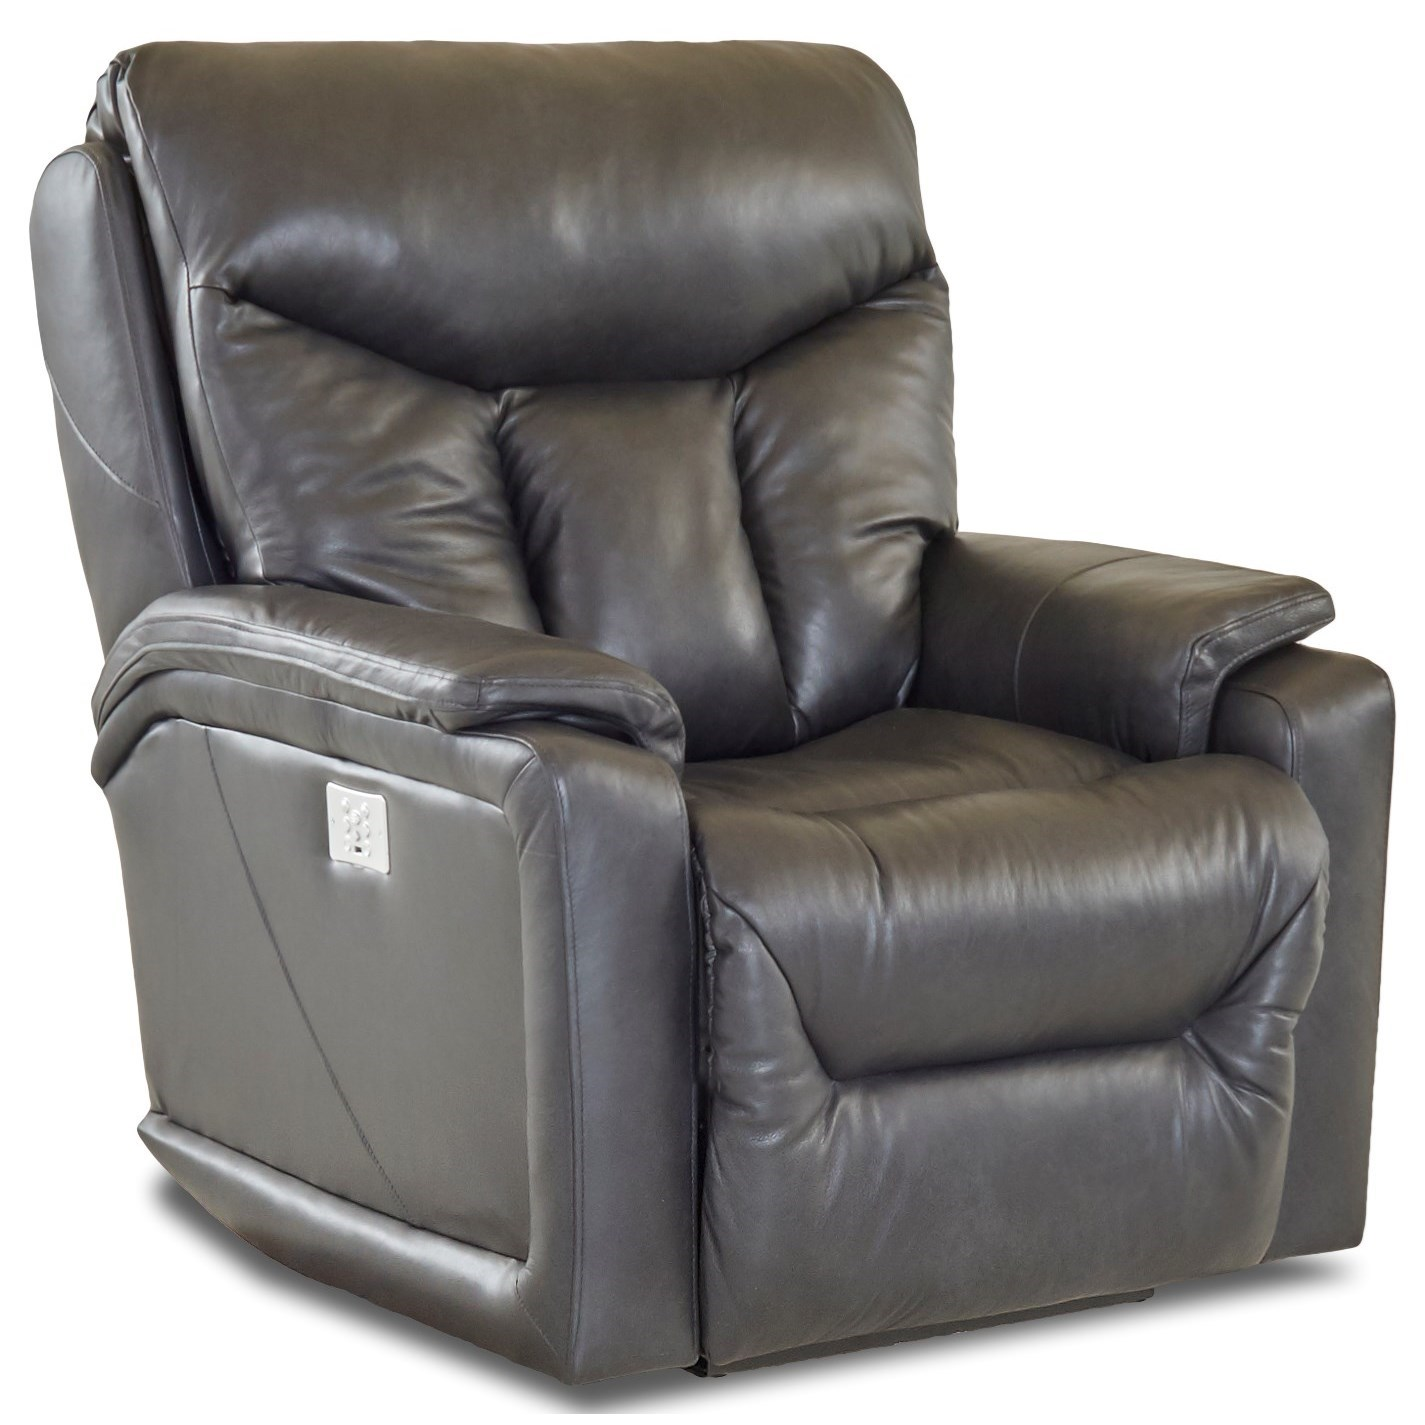 Casual Power Recliner with USB Charging Port and Bluetooth App